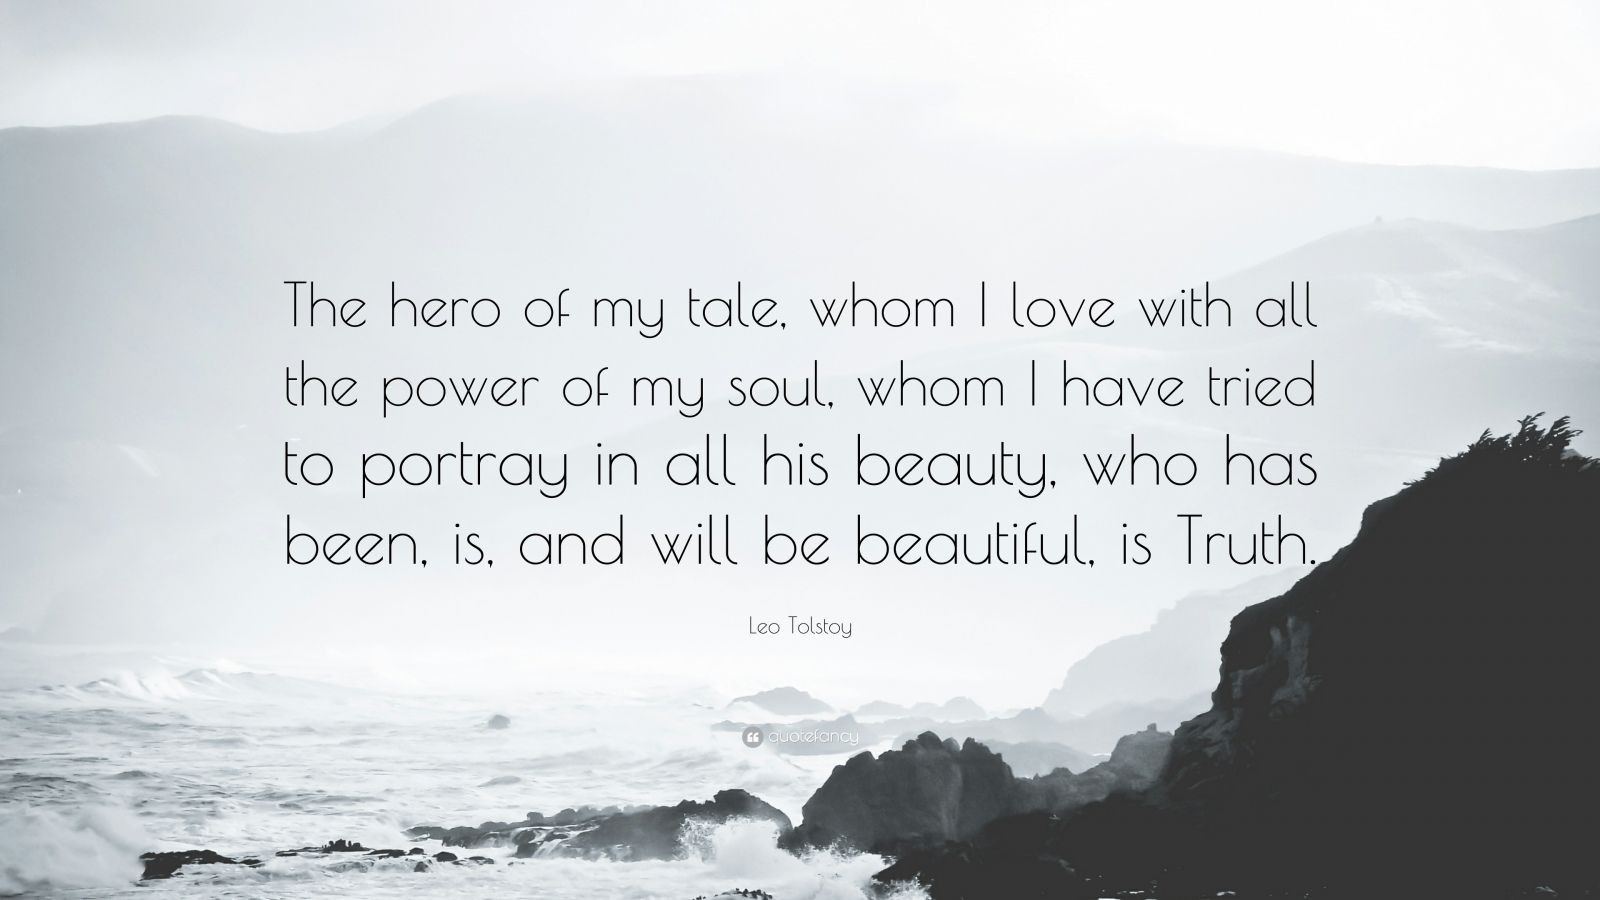 """Leo Tolstoy Quote: """"The hero of my tale, whom I love with all the power of my soul, whom I have tried to portray in all his beauty, who has been, is, and will be beautiful, is Truth."""""""